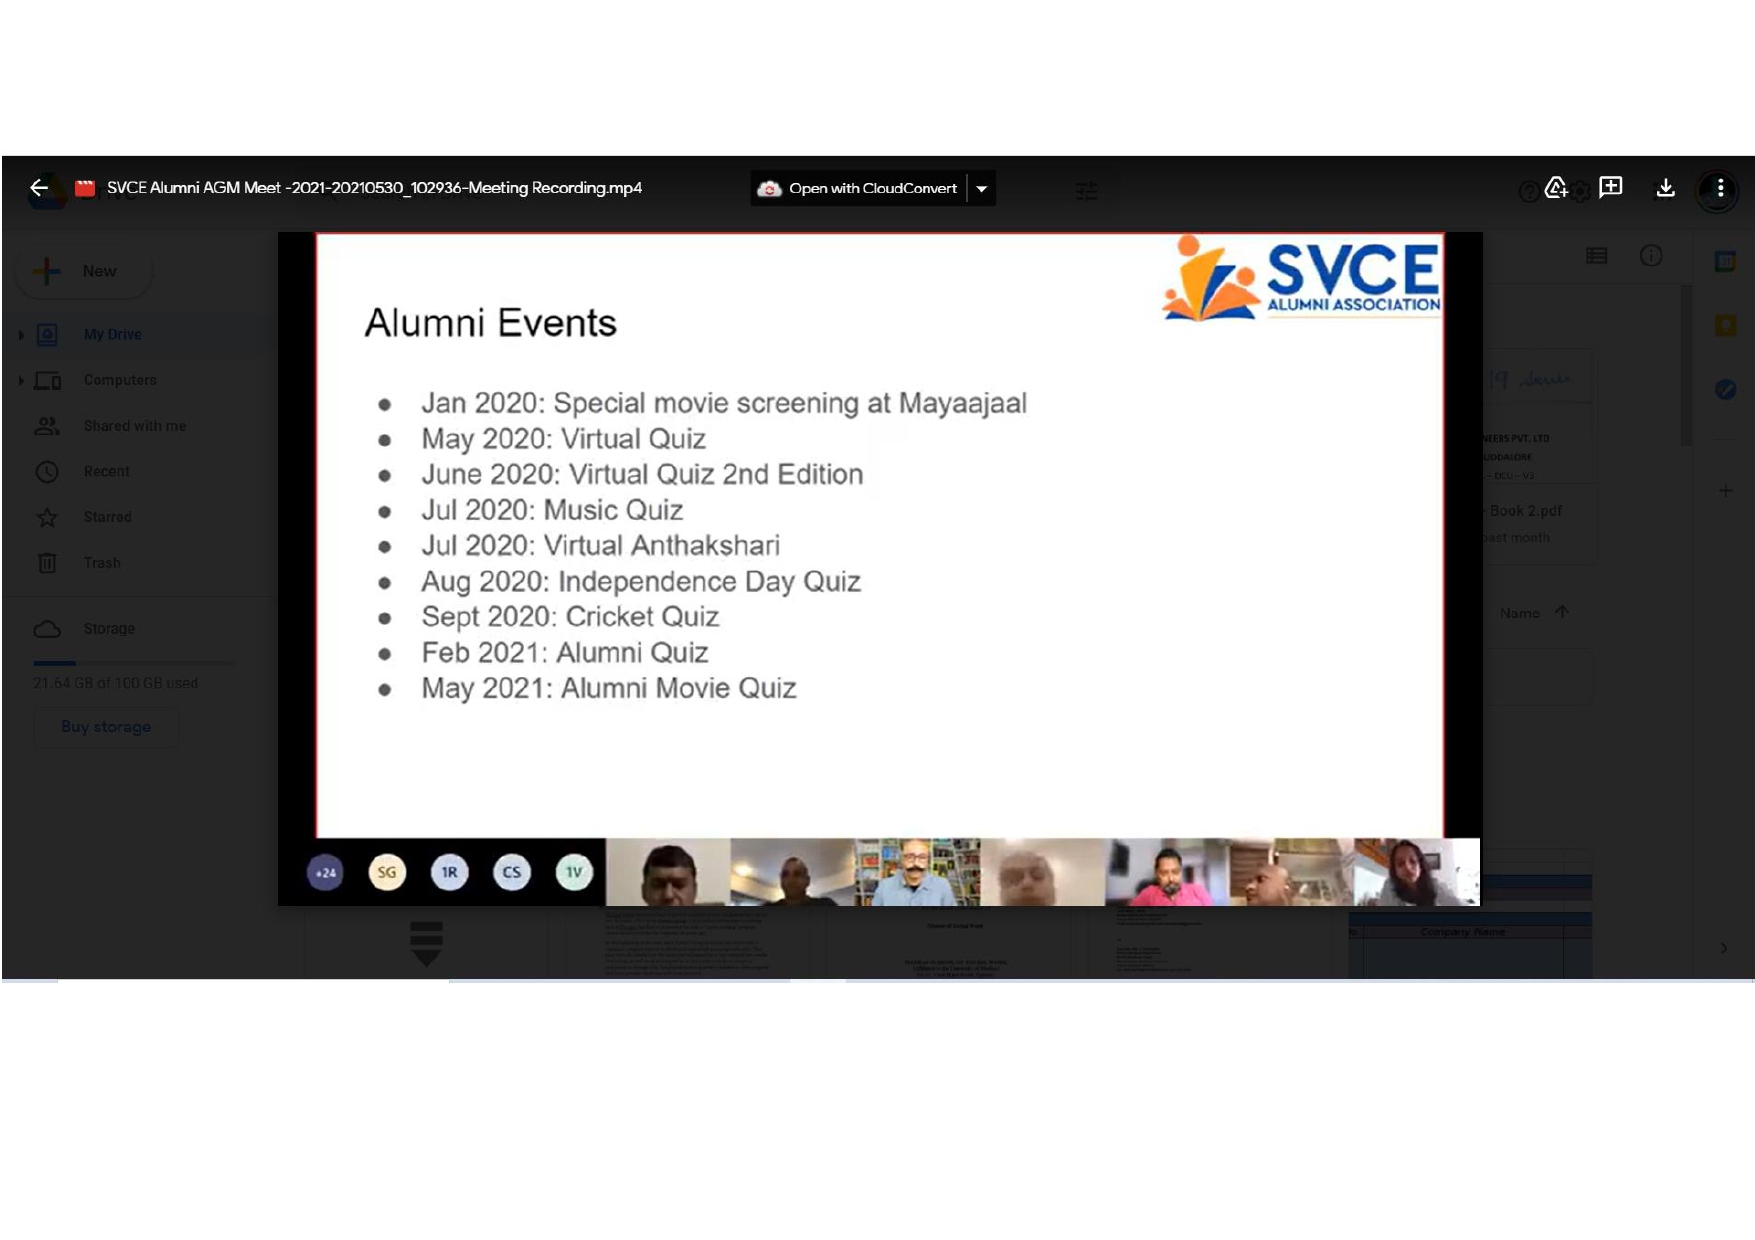 Alumni Events Conducted